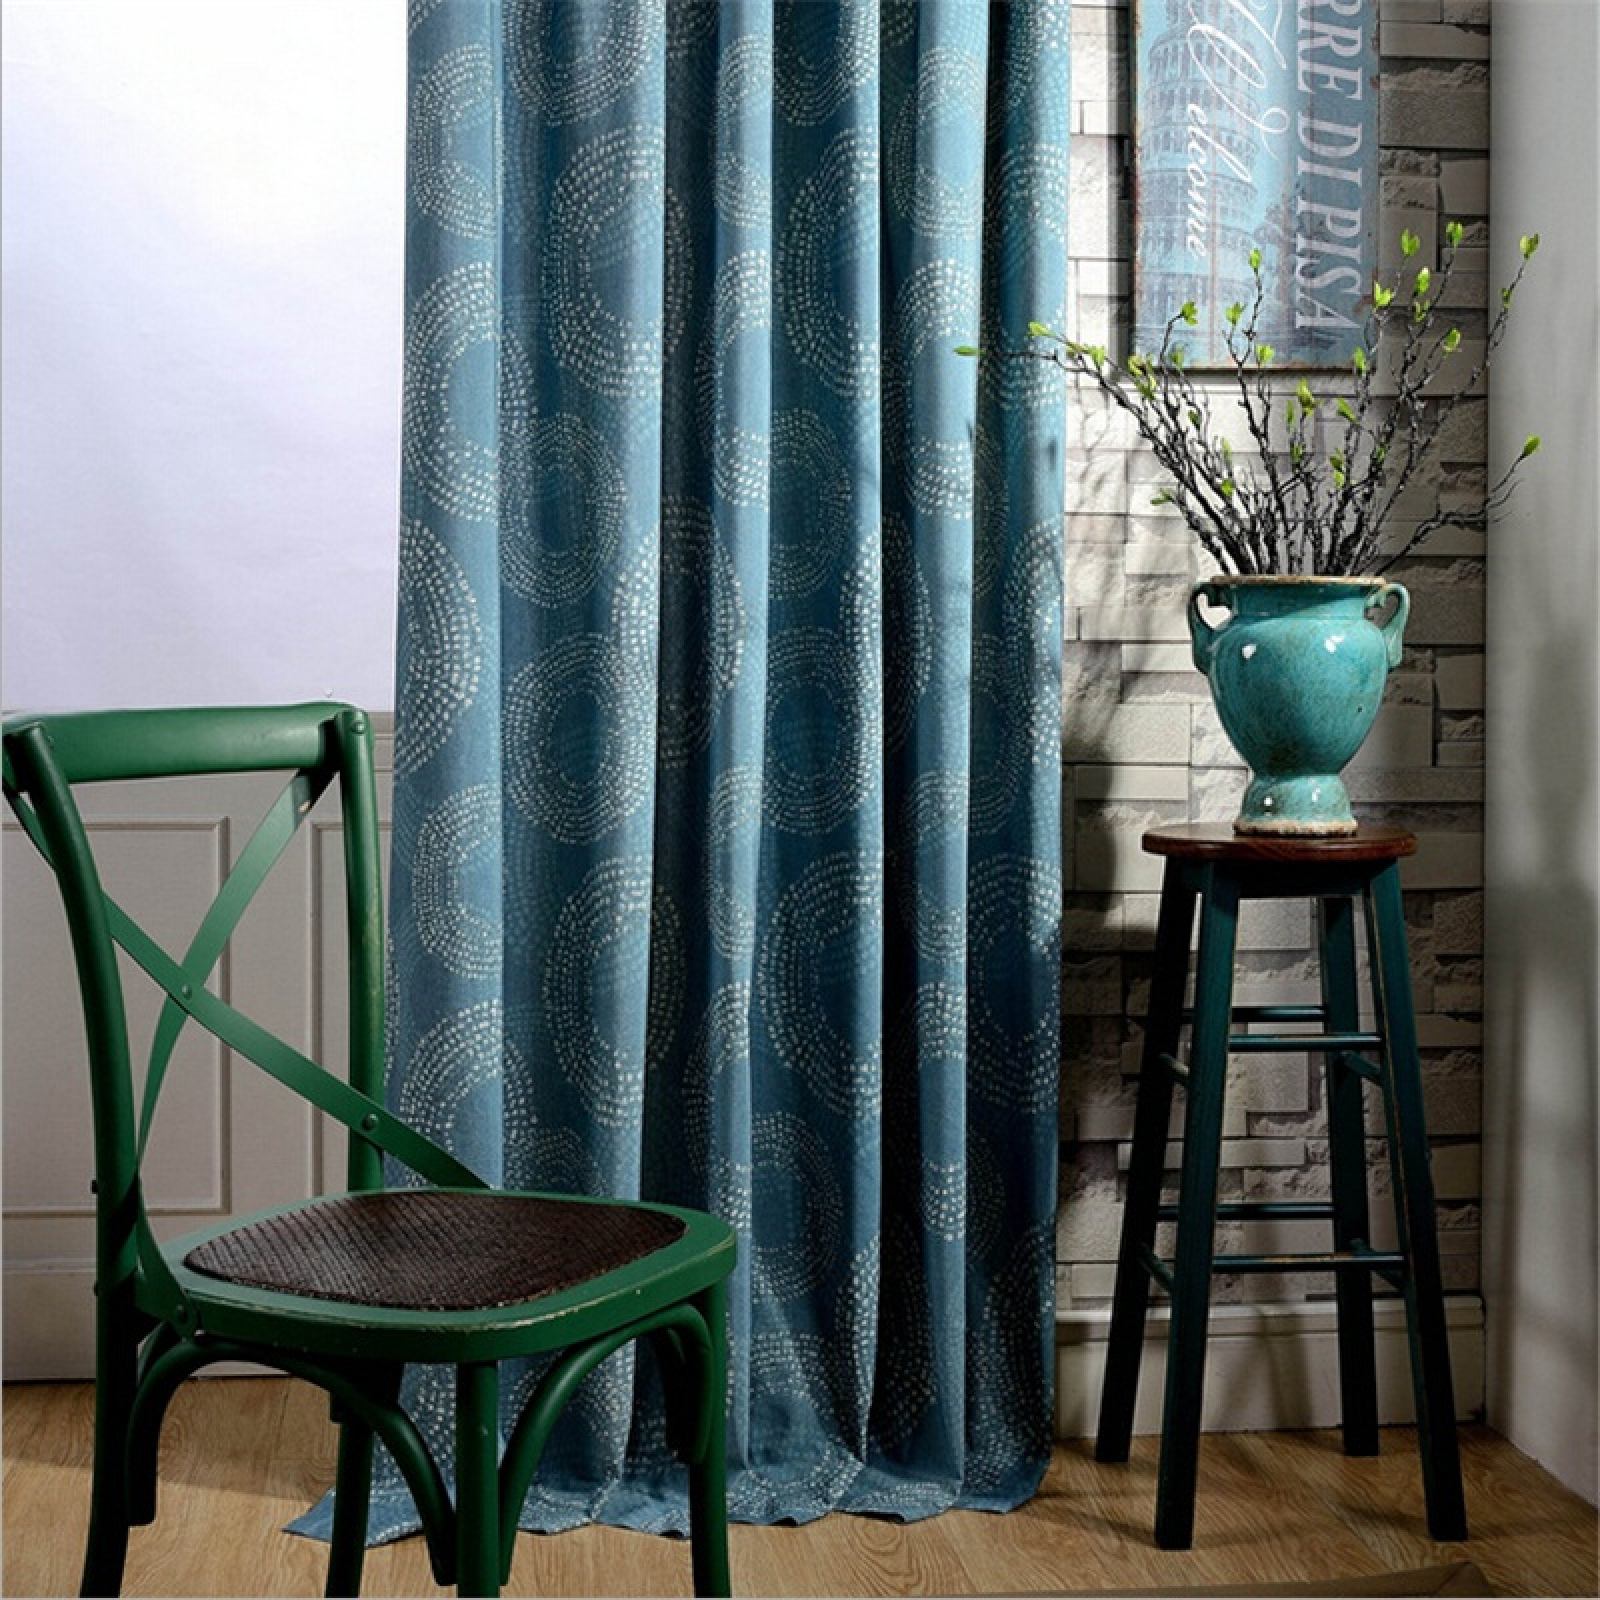 Curtain Insulation Fabric Blue Color Fireworks Design Curtains